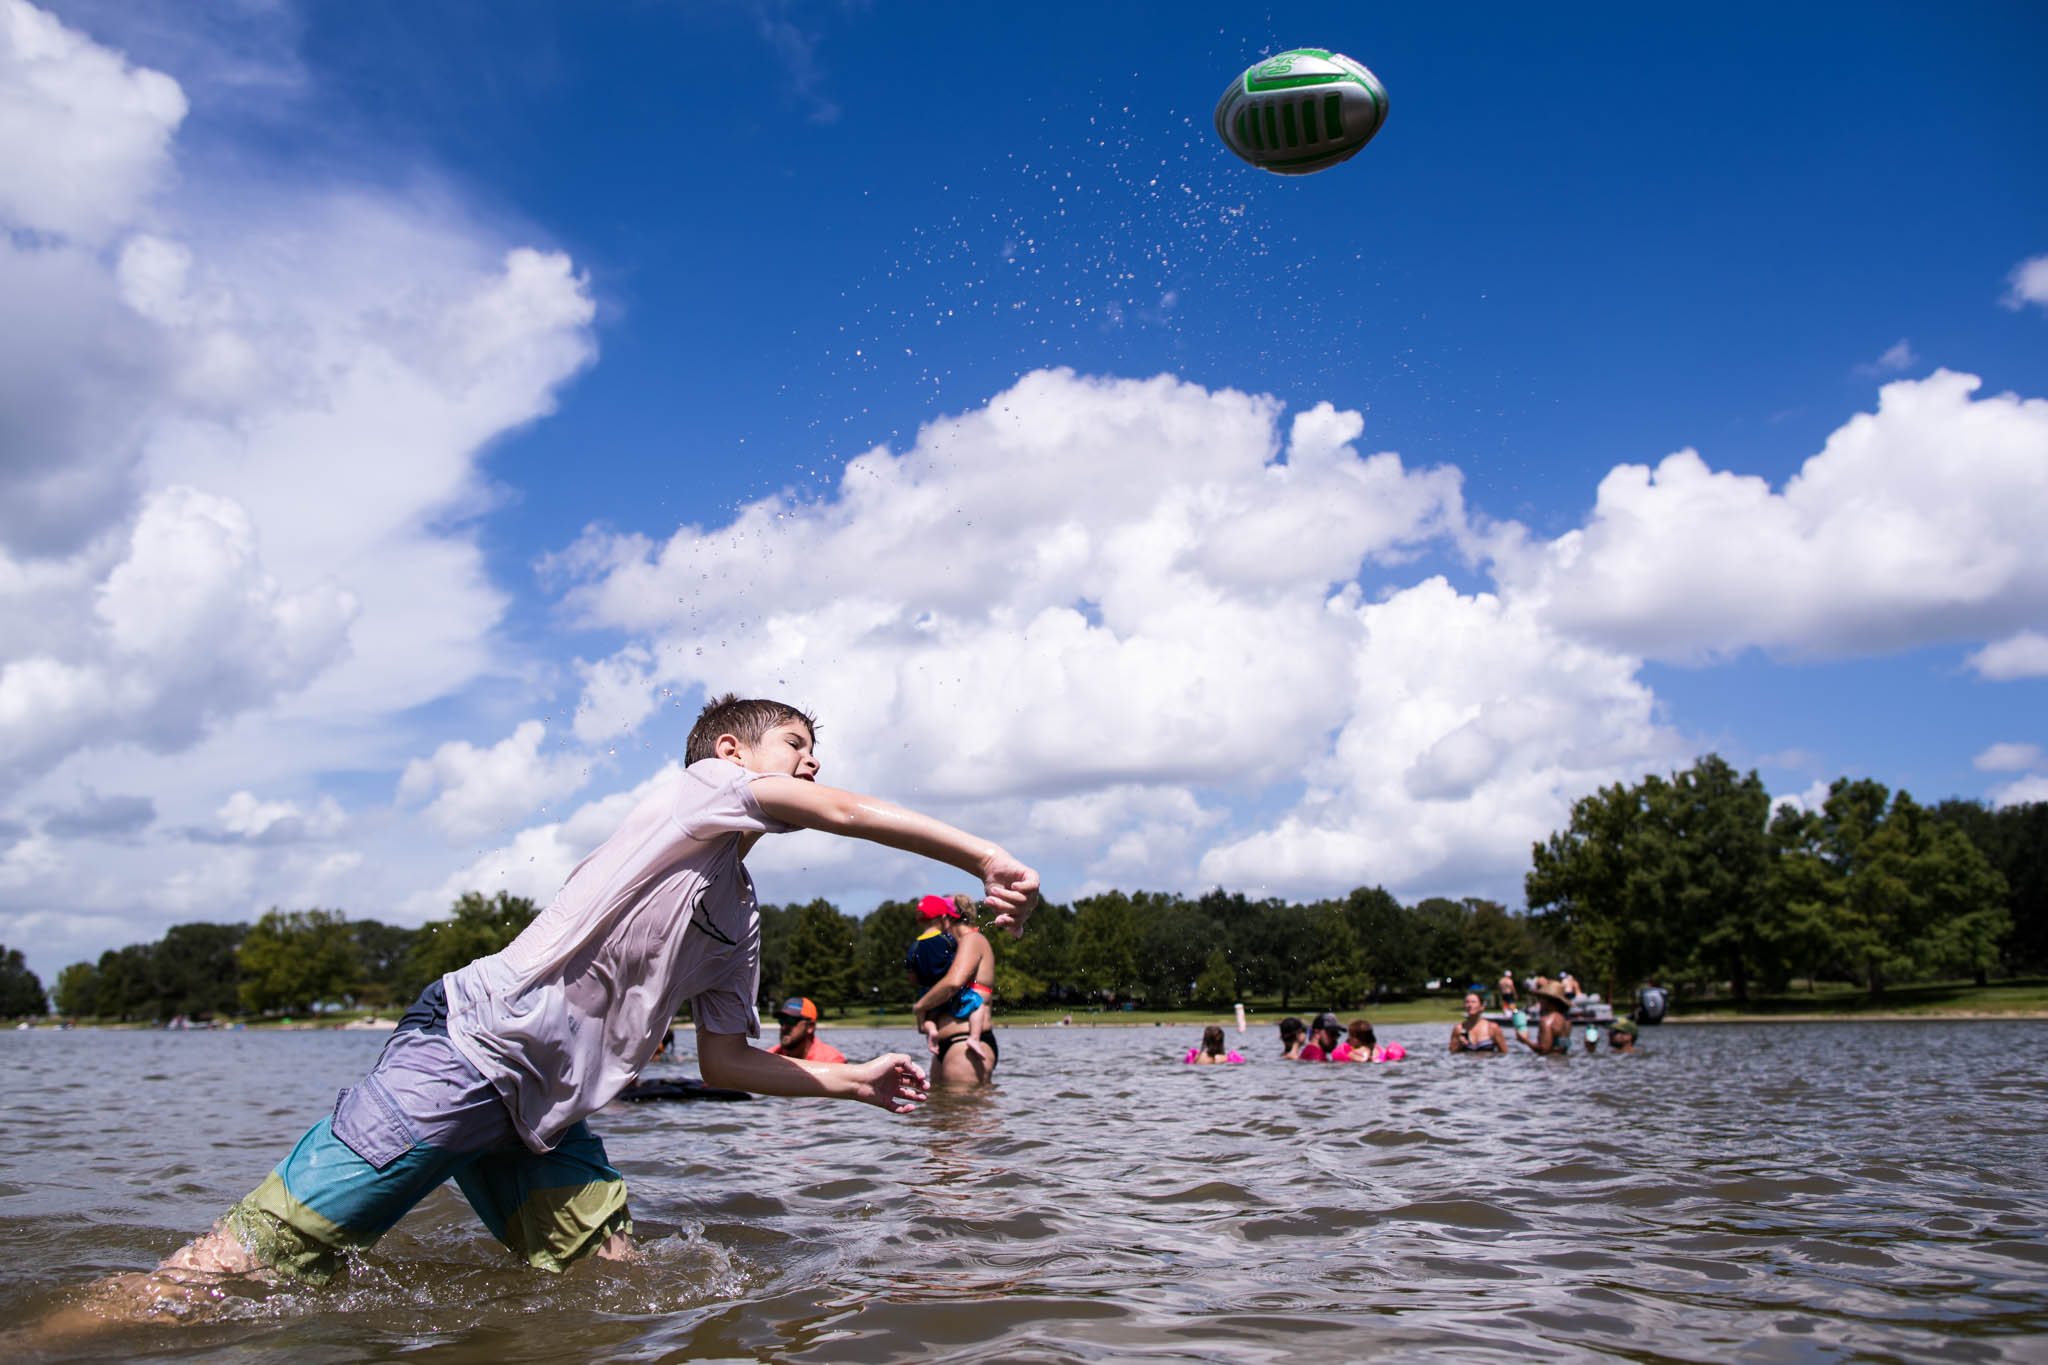 Lawren Rose Photography takes a photograph of a boy throwing a football in a lake with bright blue sky behind him